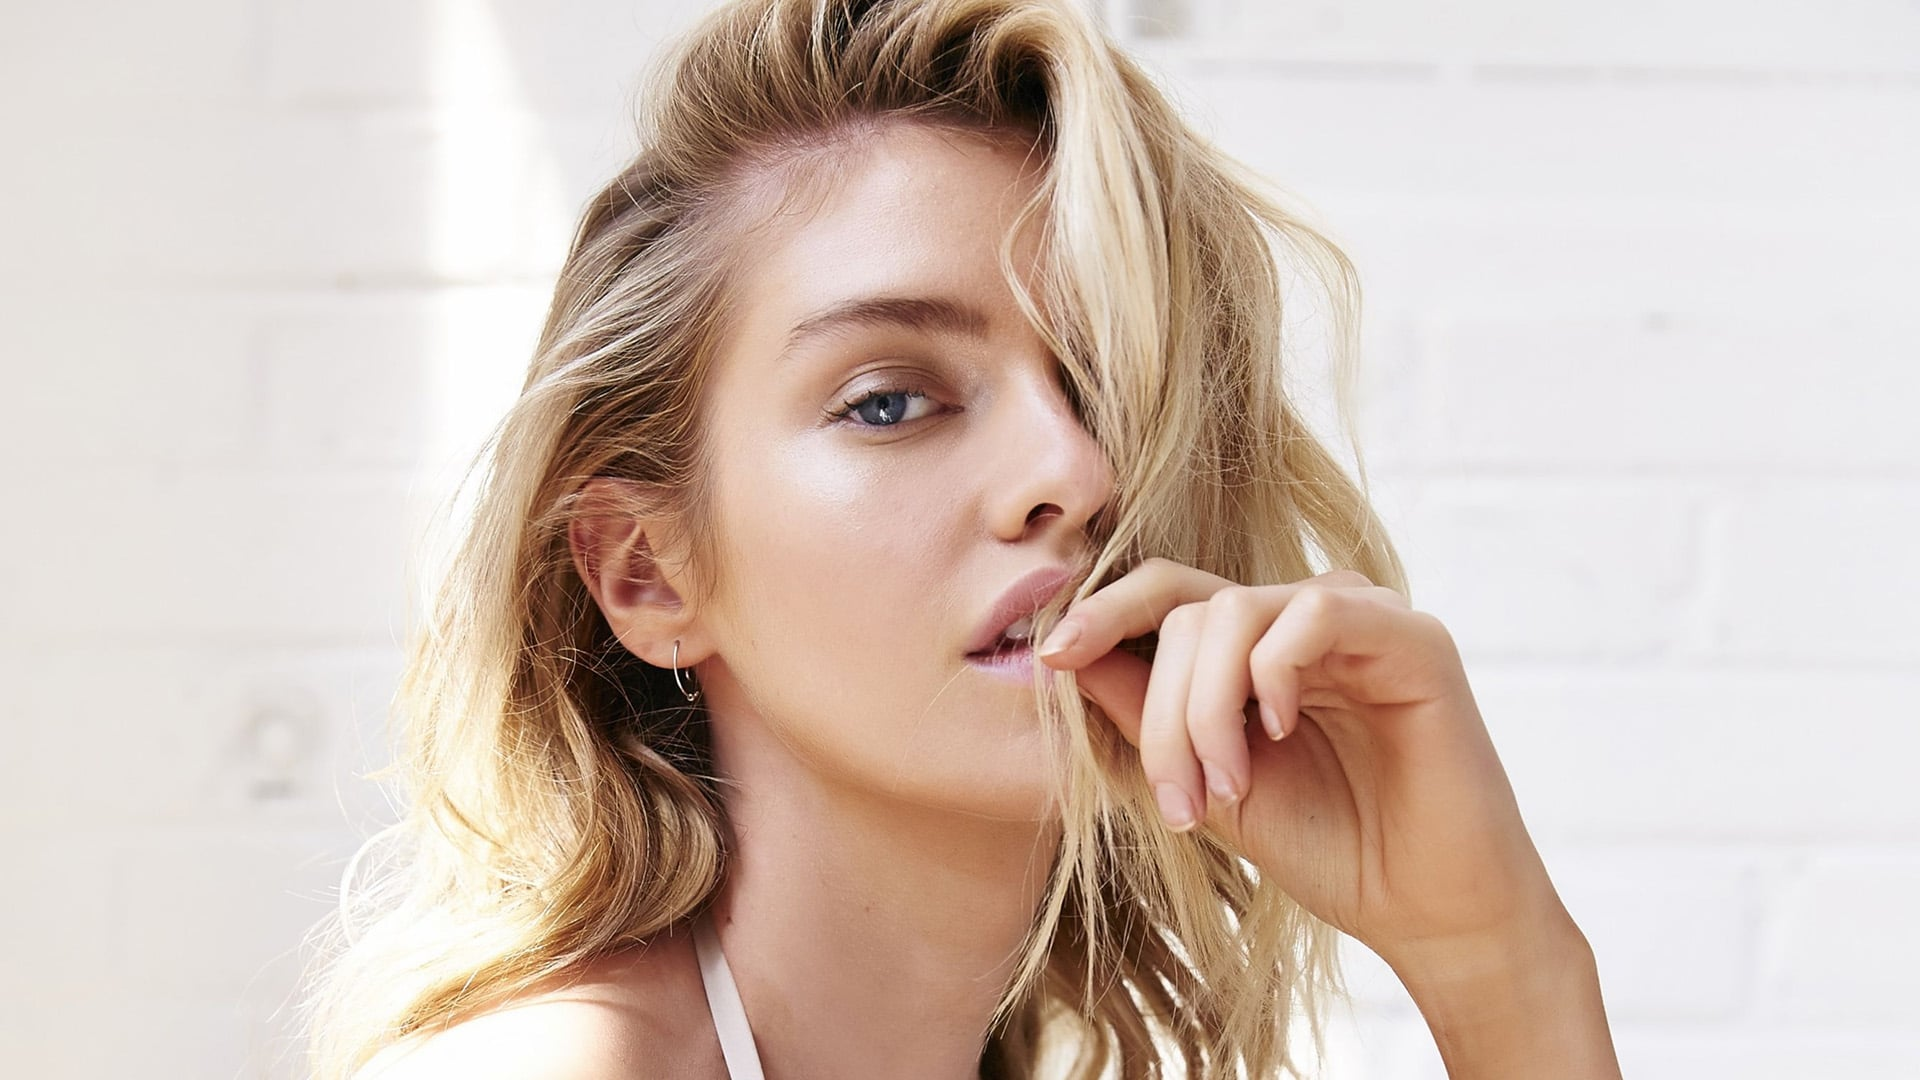 Stella Maxwell Wallpapers and Background Images   stmednet 1920x1080